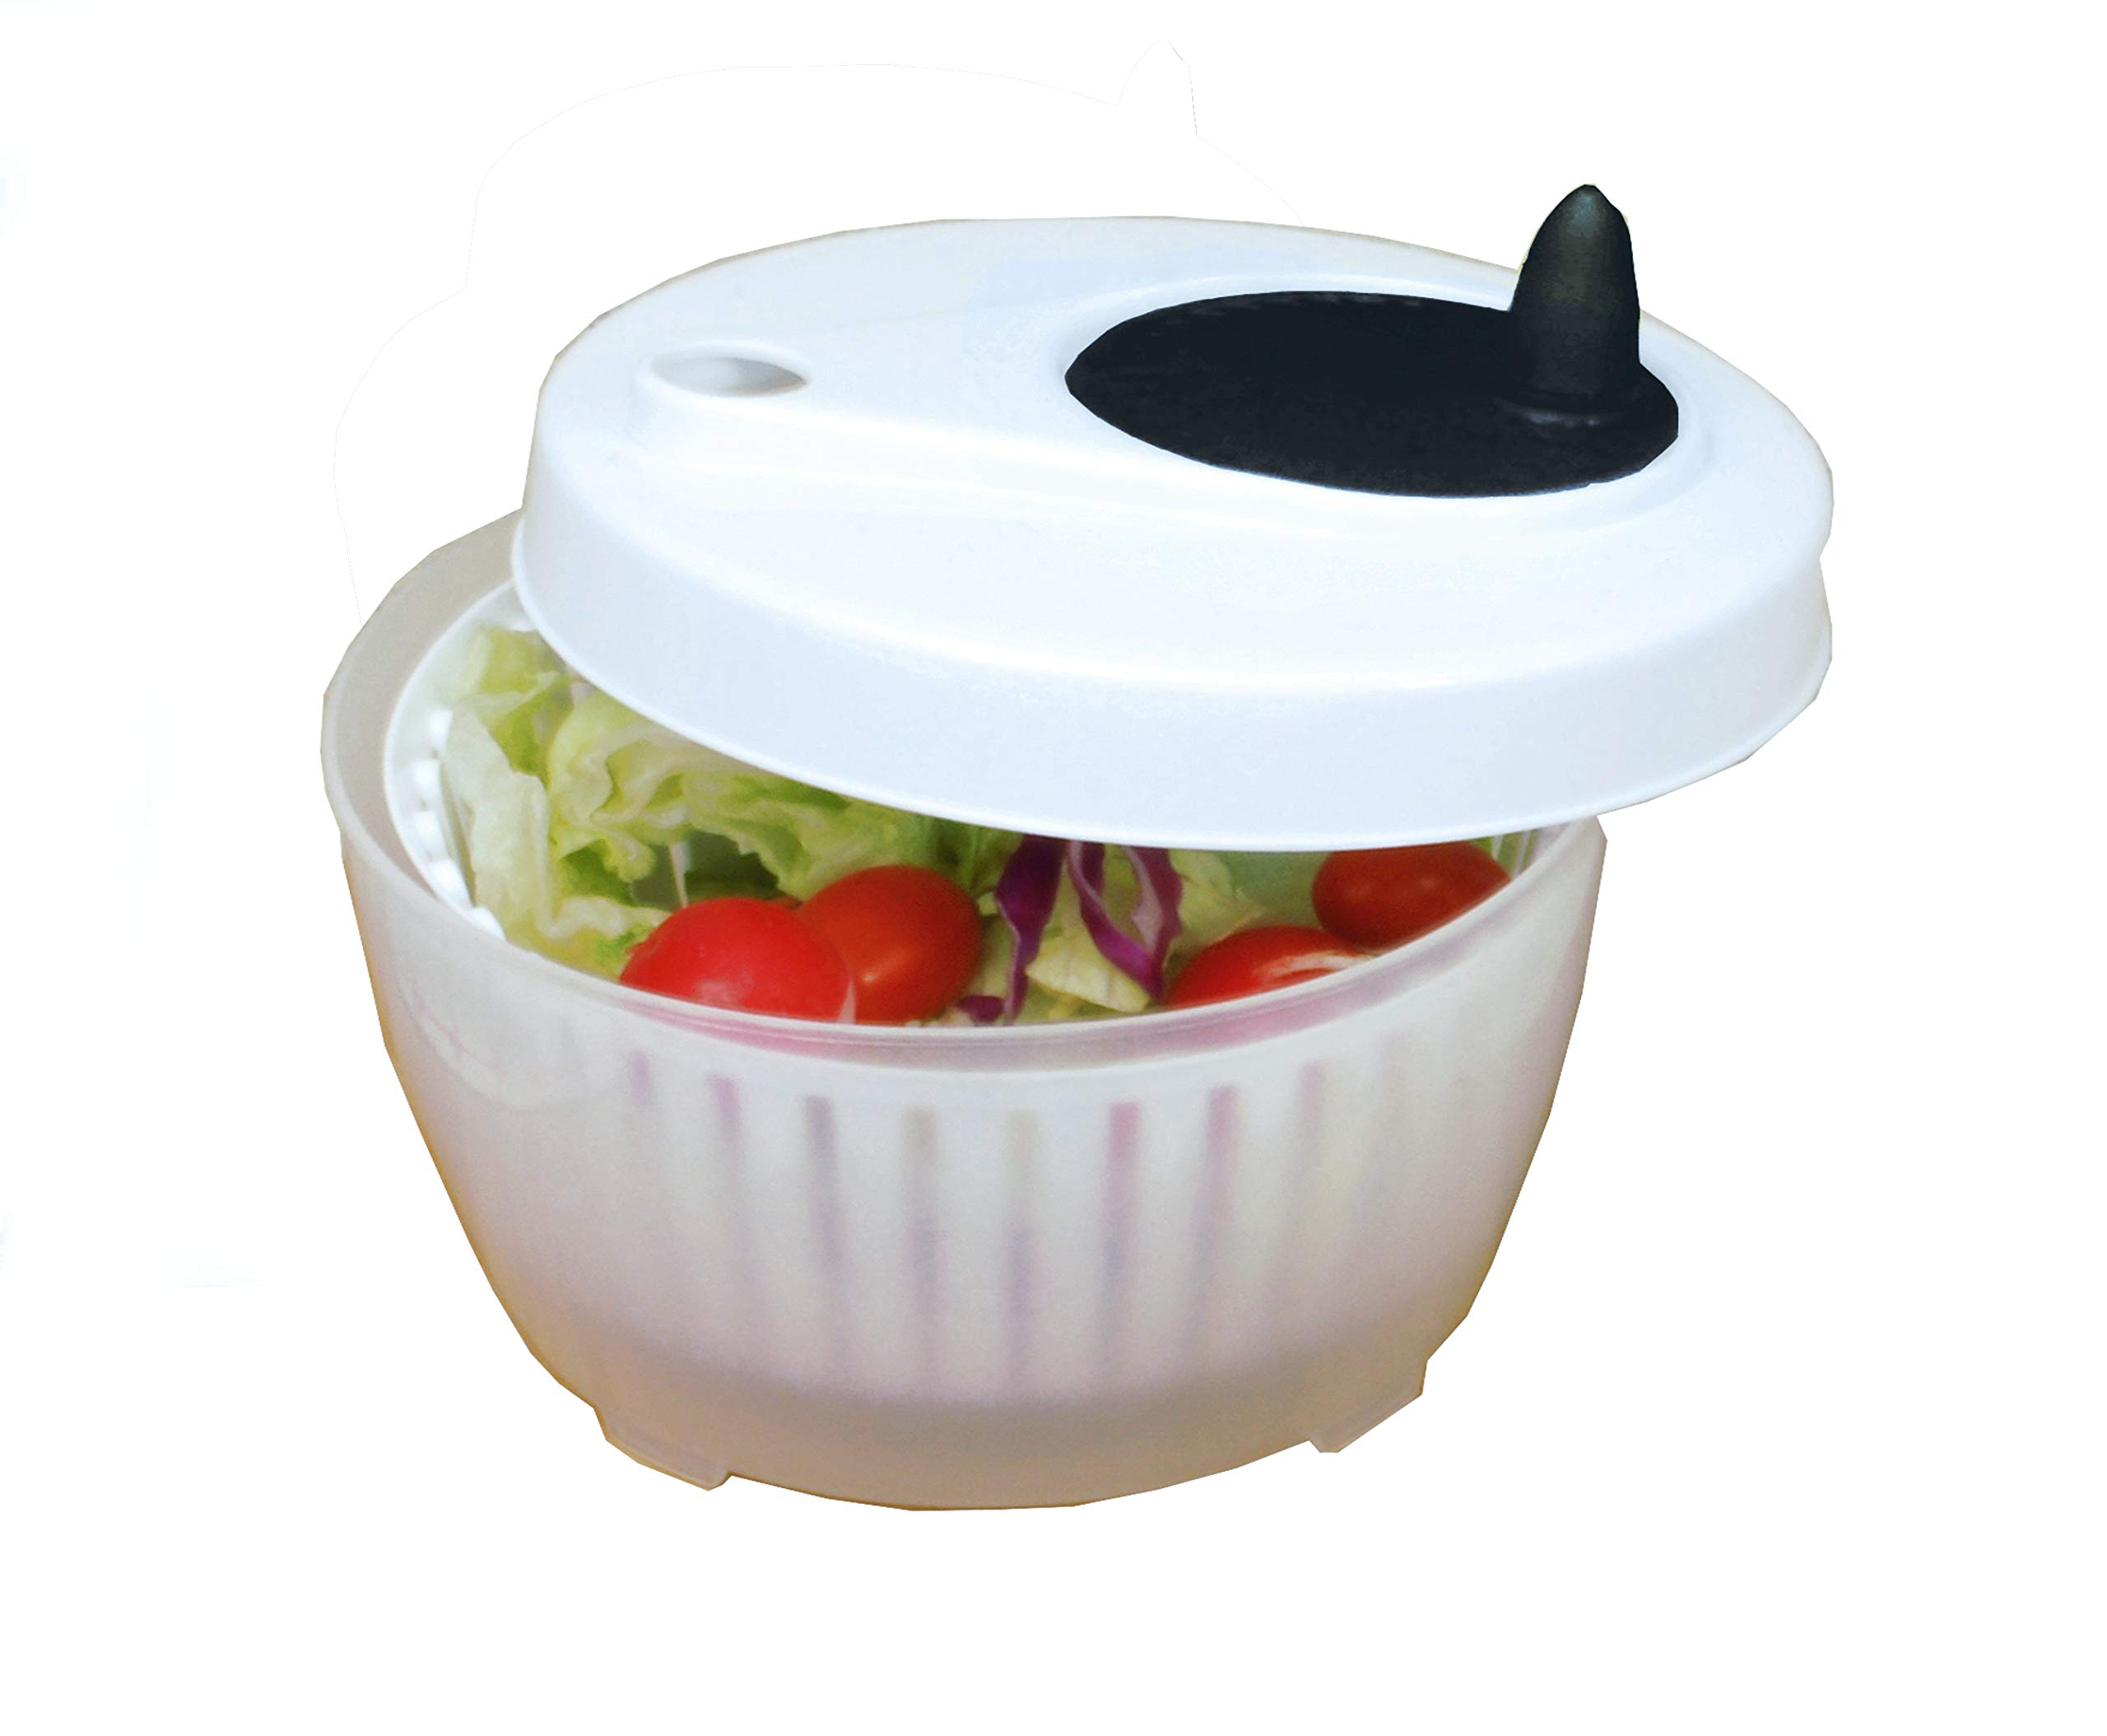 ExcelSteel 602 Functional, Fruits, Vegetables Mini Salad Spinner, 1.4 Qt, White by ExcelSteel